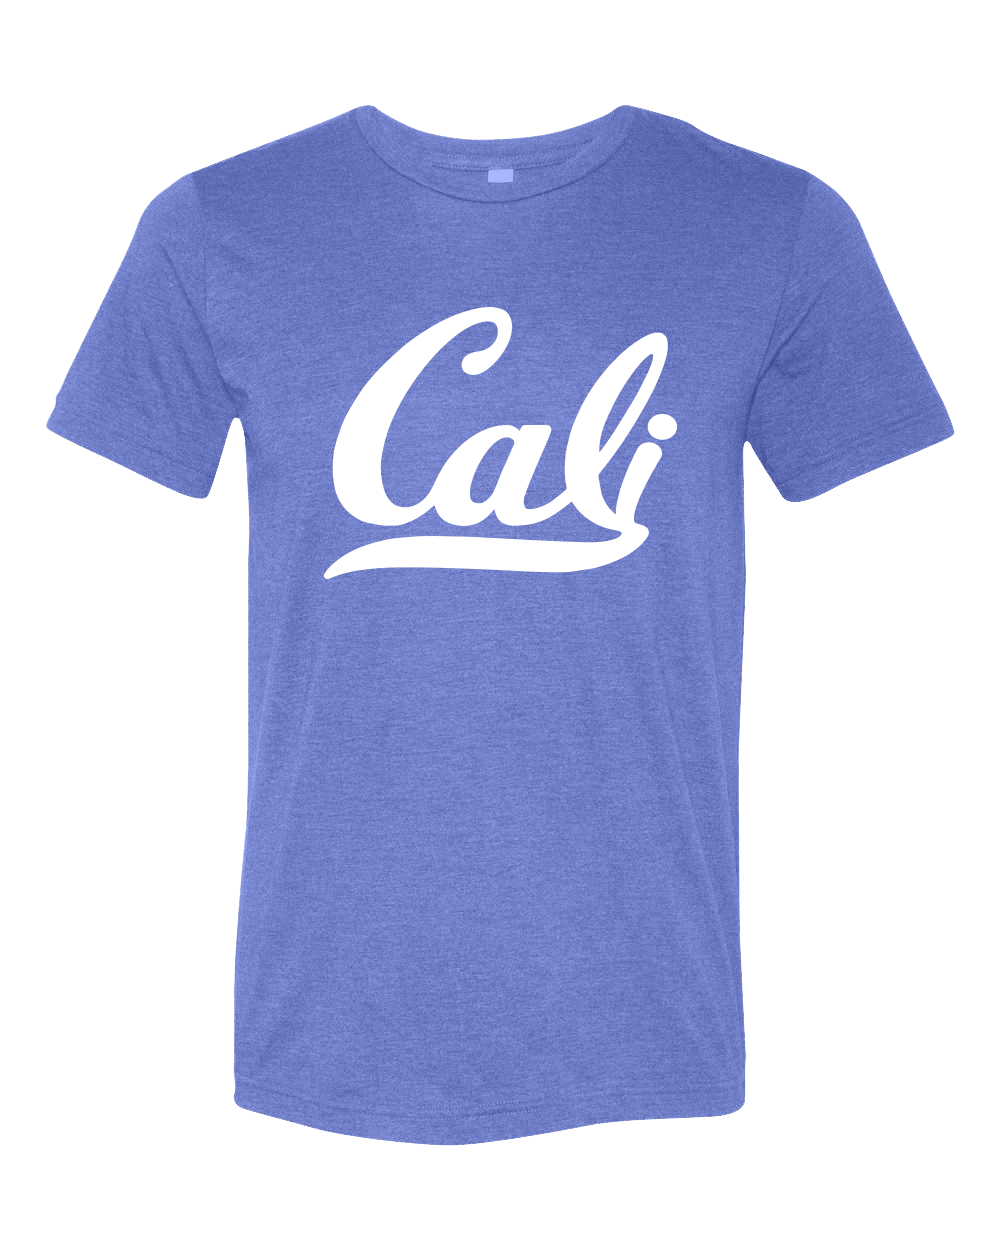 California Cali script printed graphic tshirt for adult men or women. Printed on a premium heather royal soft triblend short sleeve tee, with white Cali script print. Sophisticated shirt that pairs wells with jeans or shorts. Sold by local shop SDTrading Co.